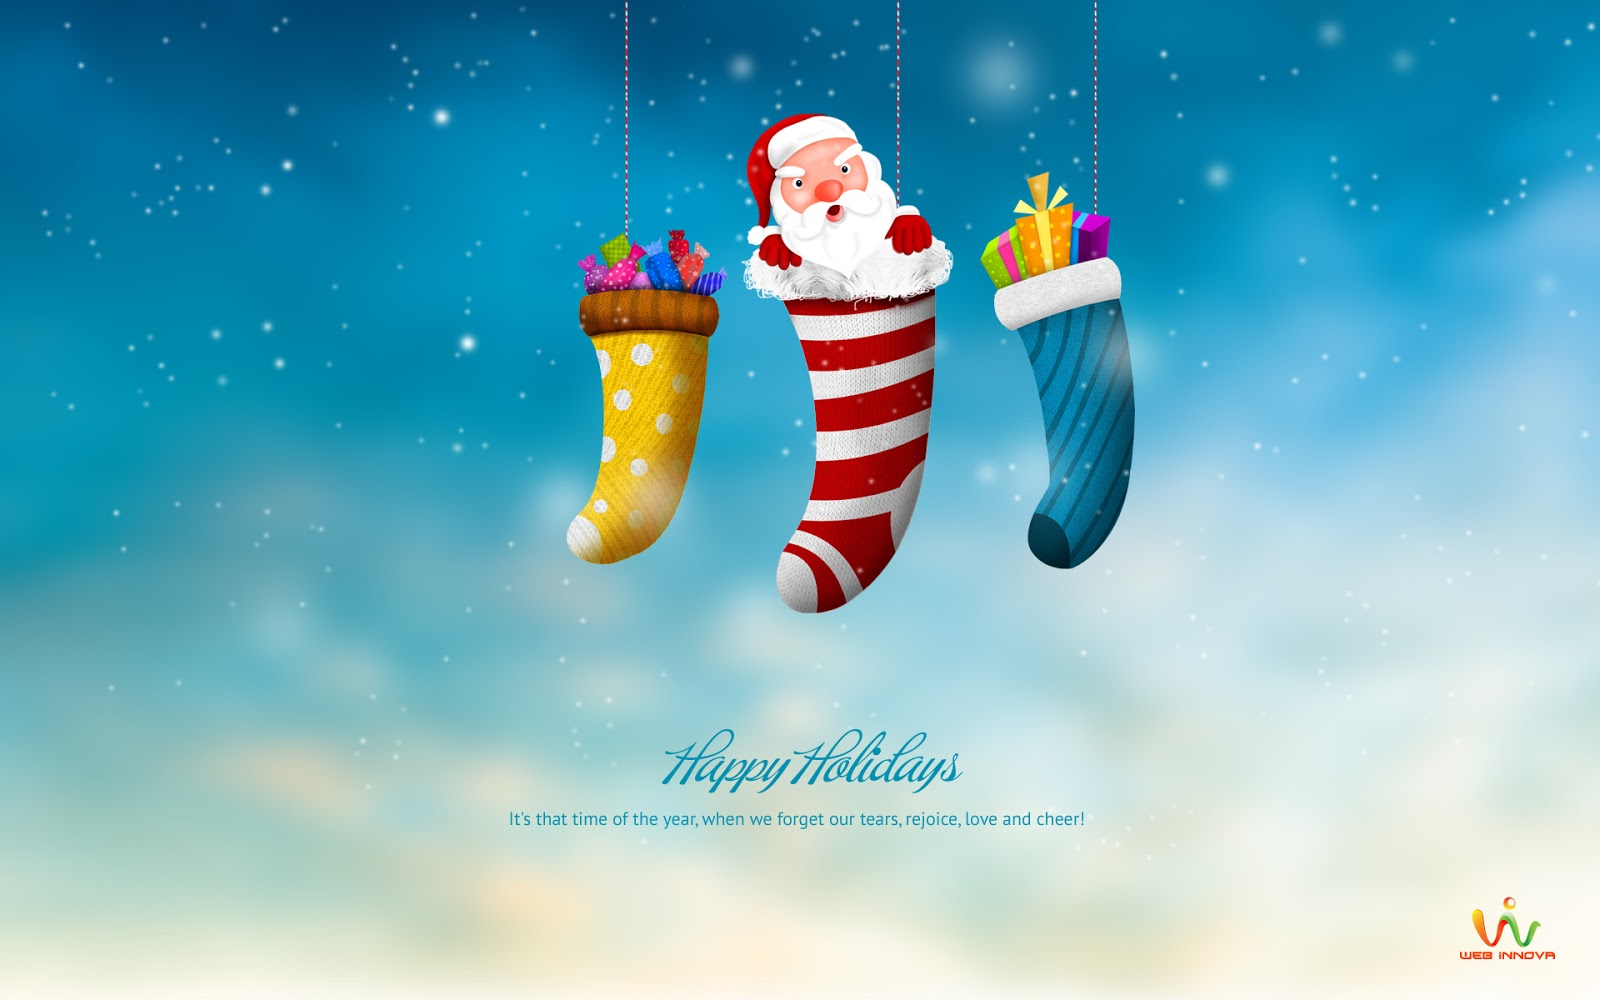 Christmas Holidays, Happy Holidays, Happy Holidays Wallpaper 2012